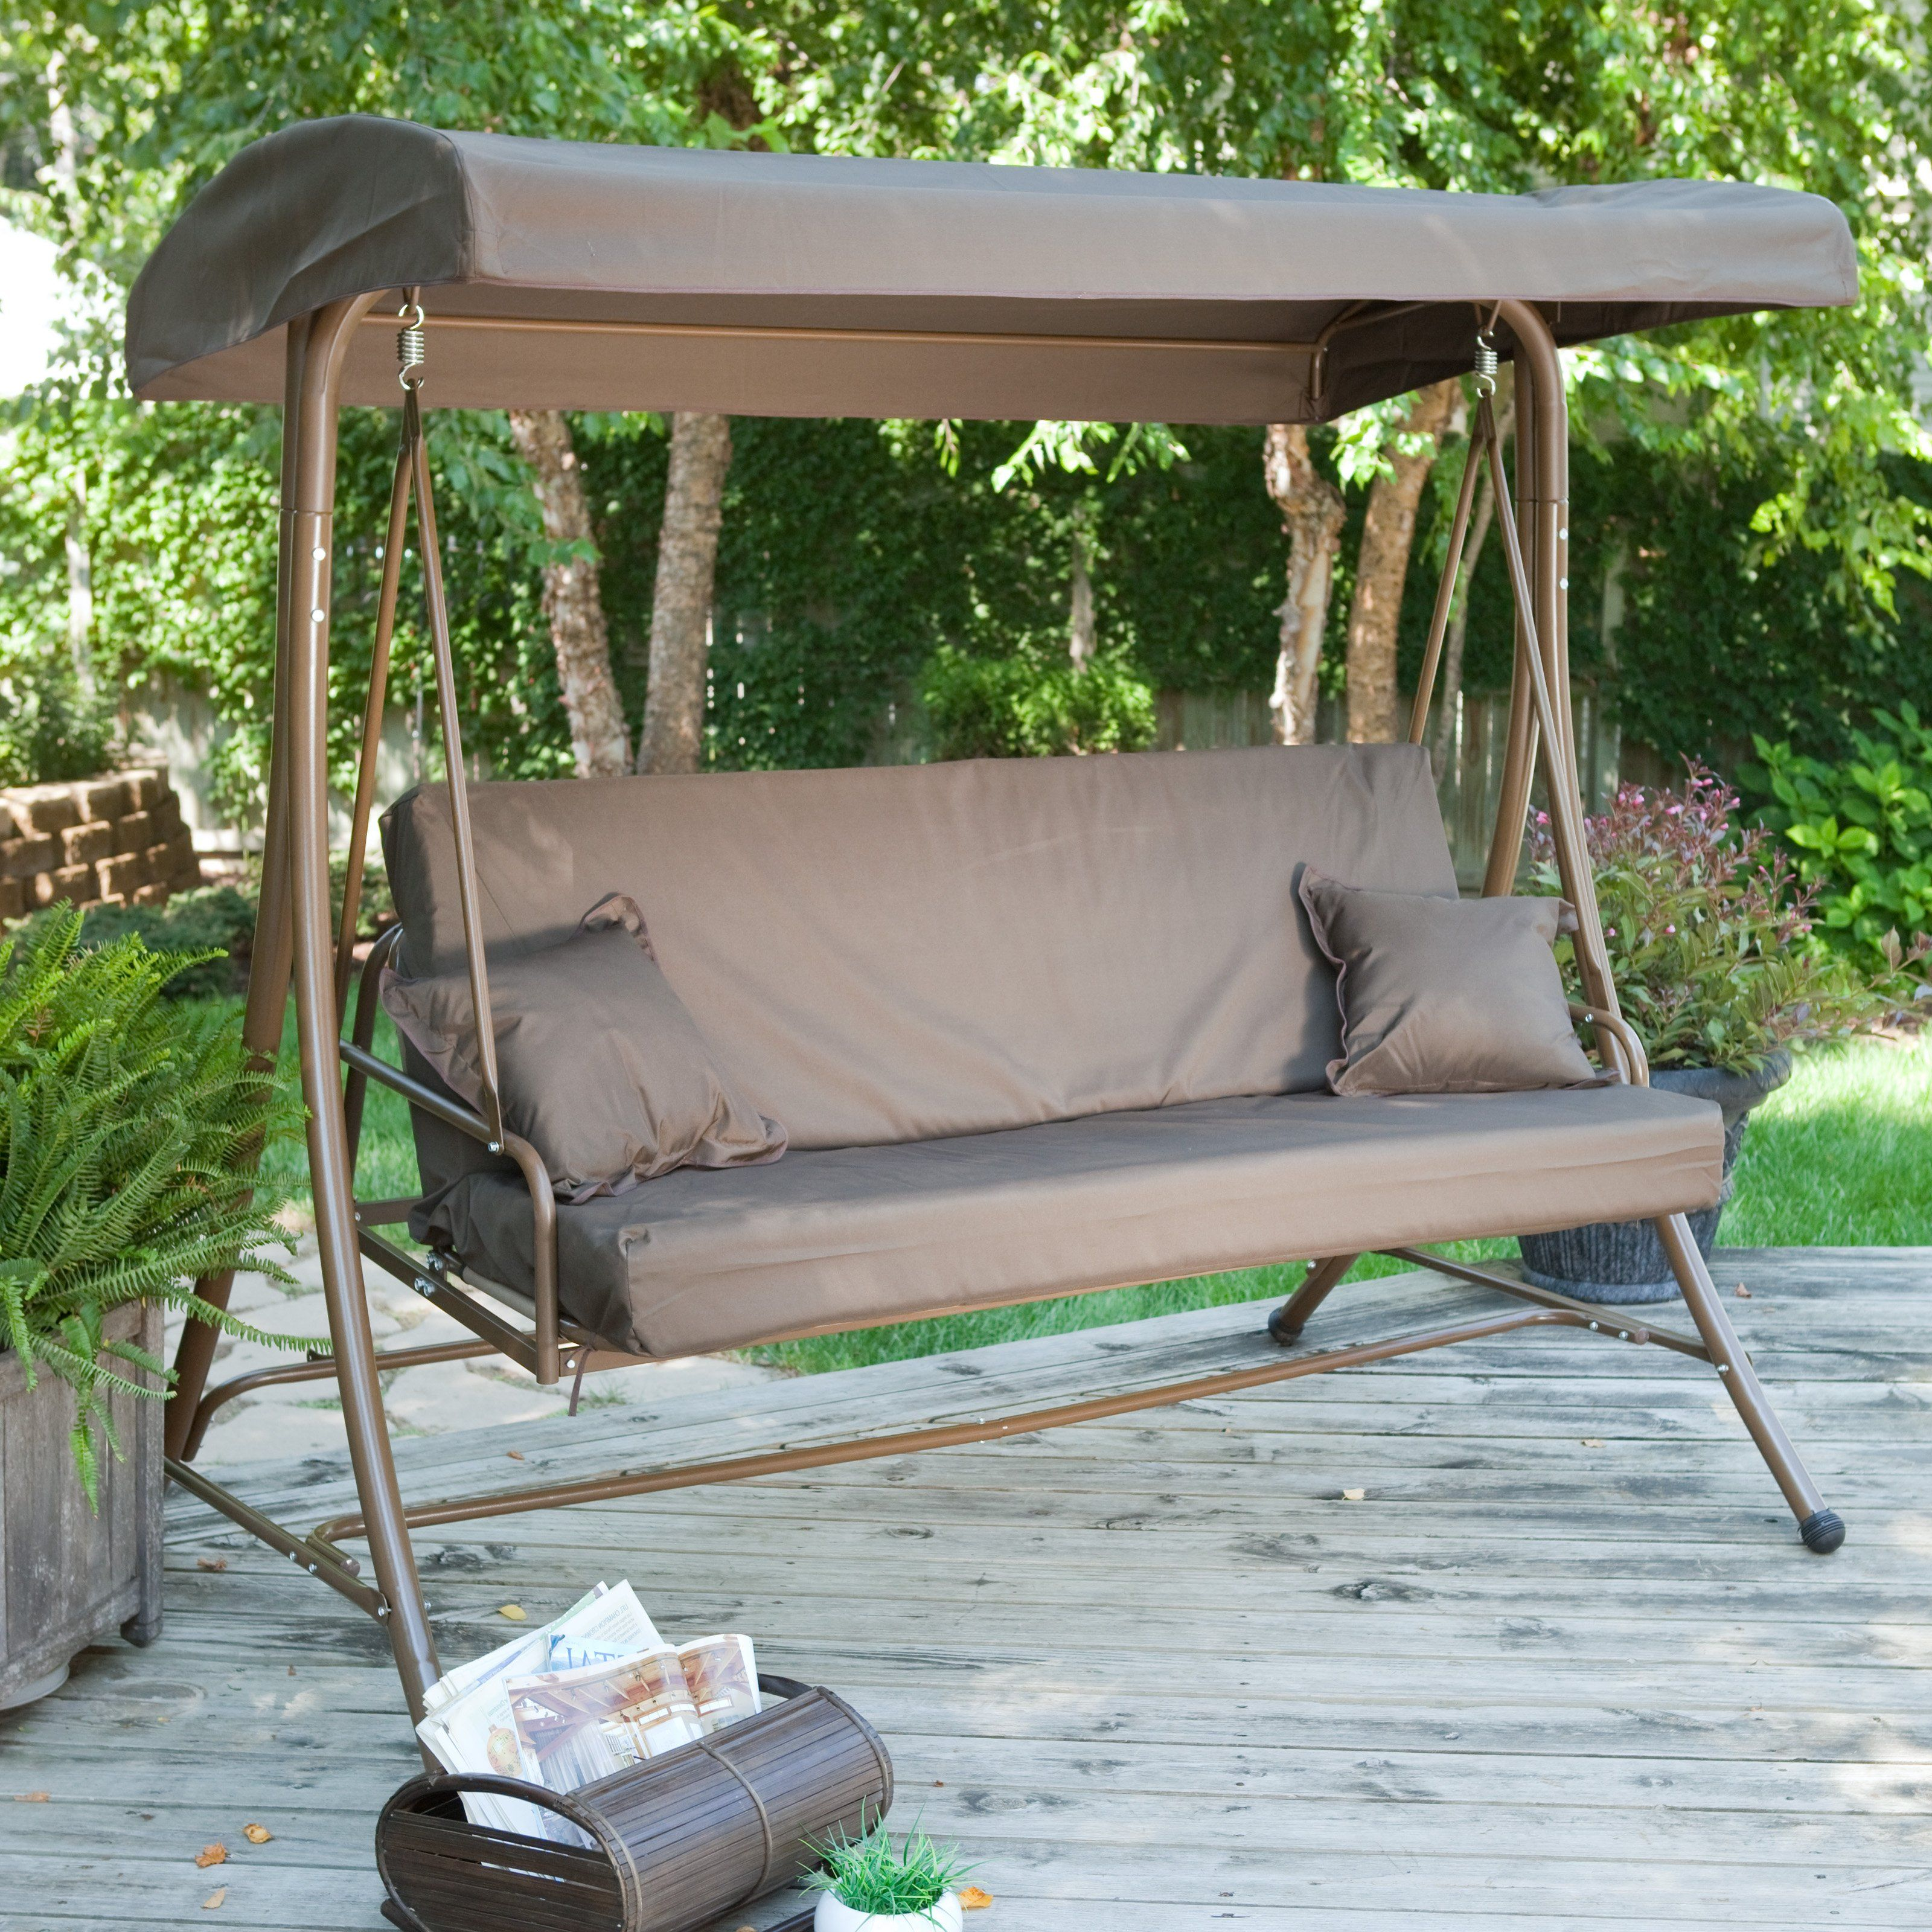 Siesta 3 Person Canopy Swing Bed - Chocolate $329.98 & Have to have it. Siesta 3 Person Canopy Swing Bed - Chocolate ...